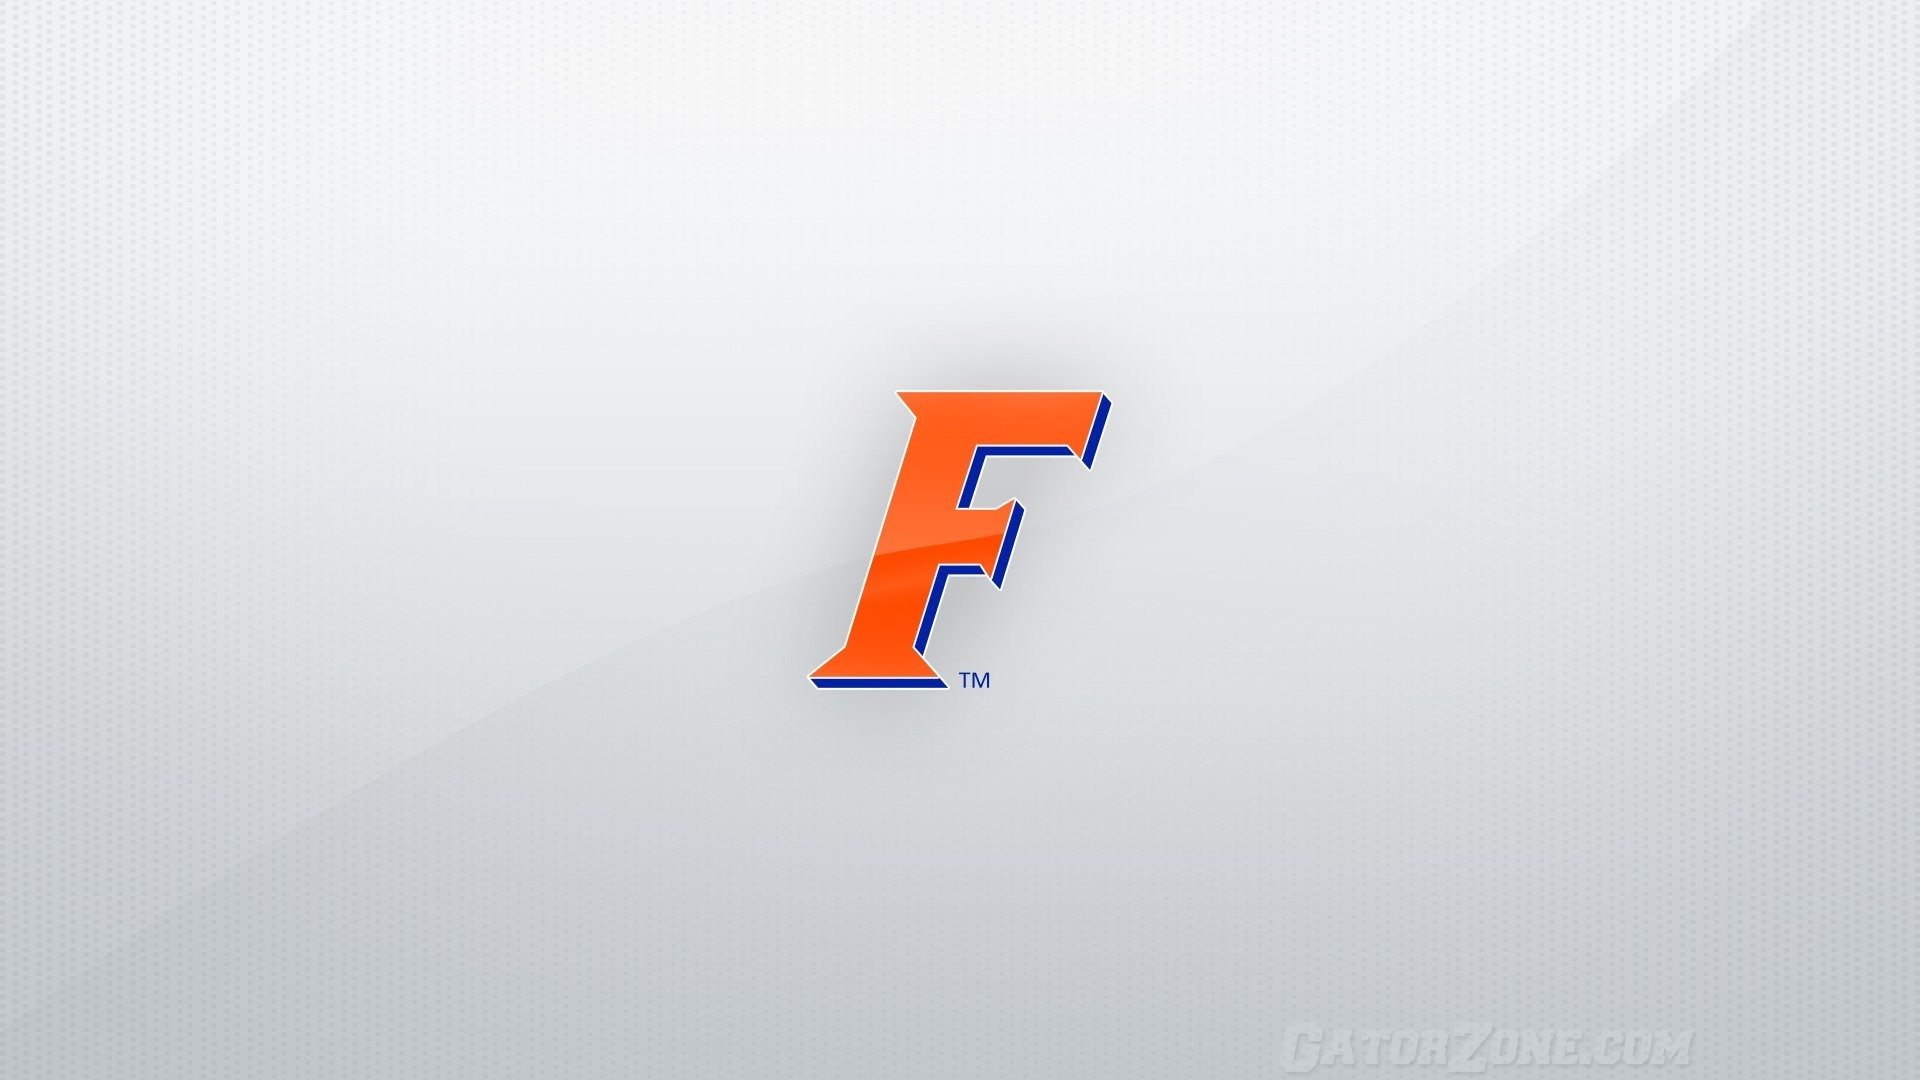 1920x1080 2560x1440 Florida Gators Wallpaper New Amazing Florida Gators Wallpaper Wtg  Wallpaperdata